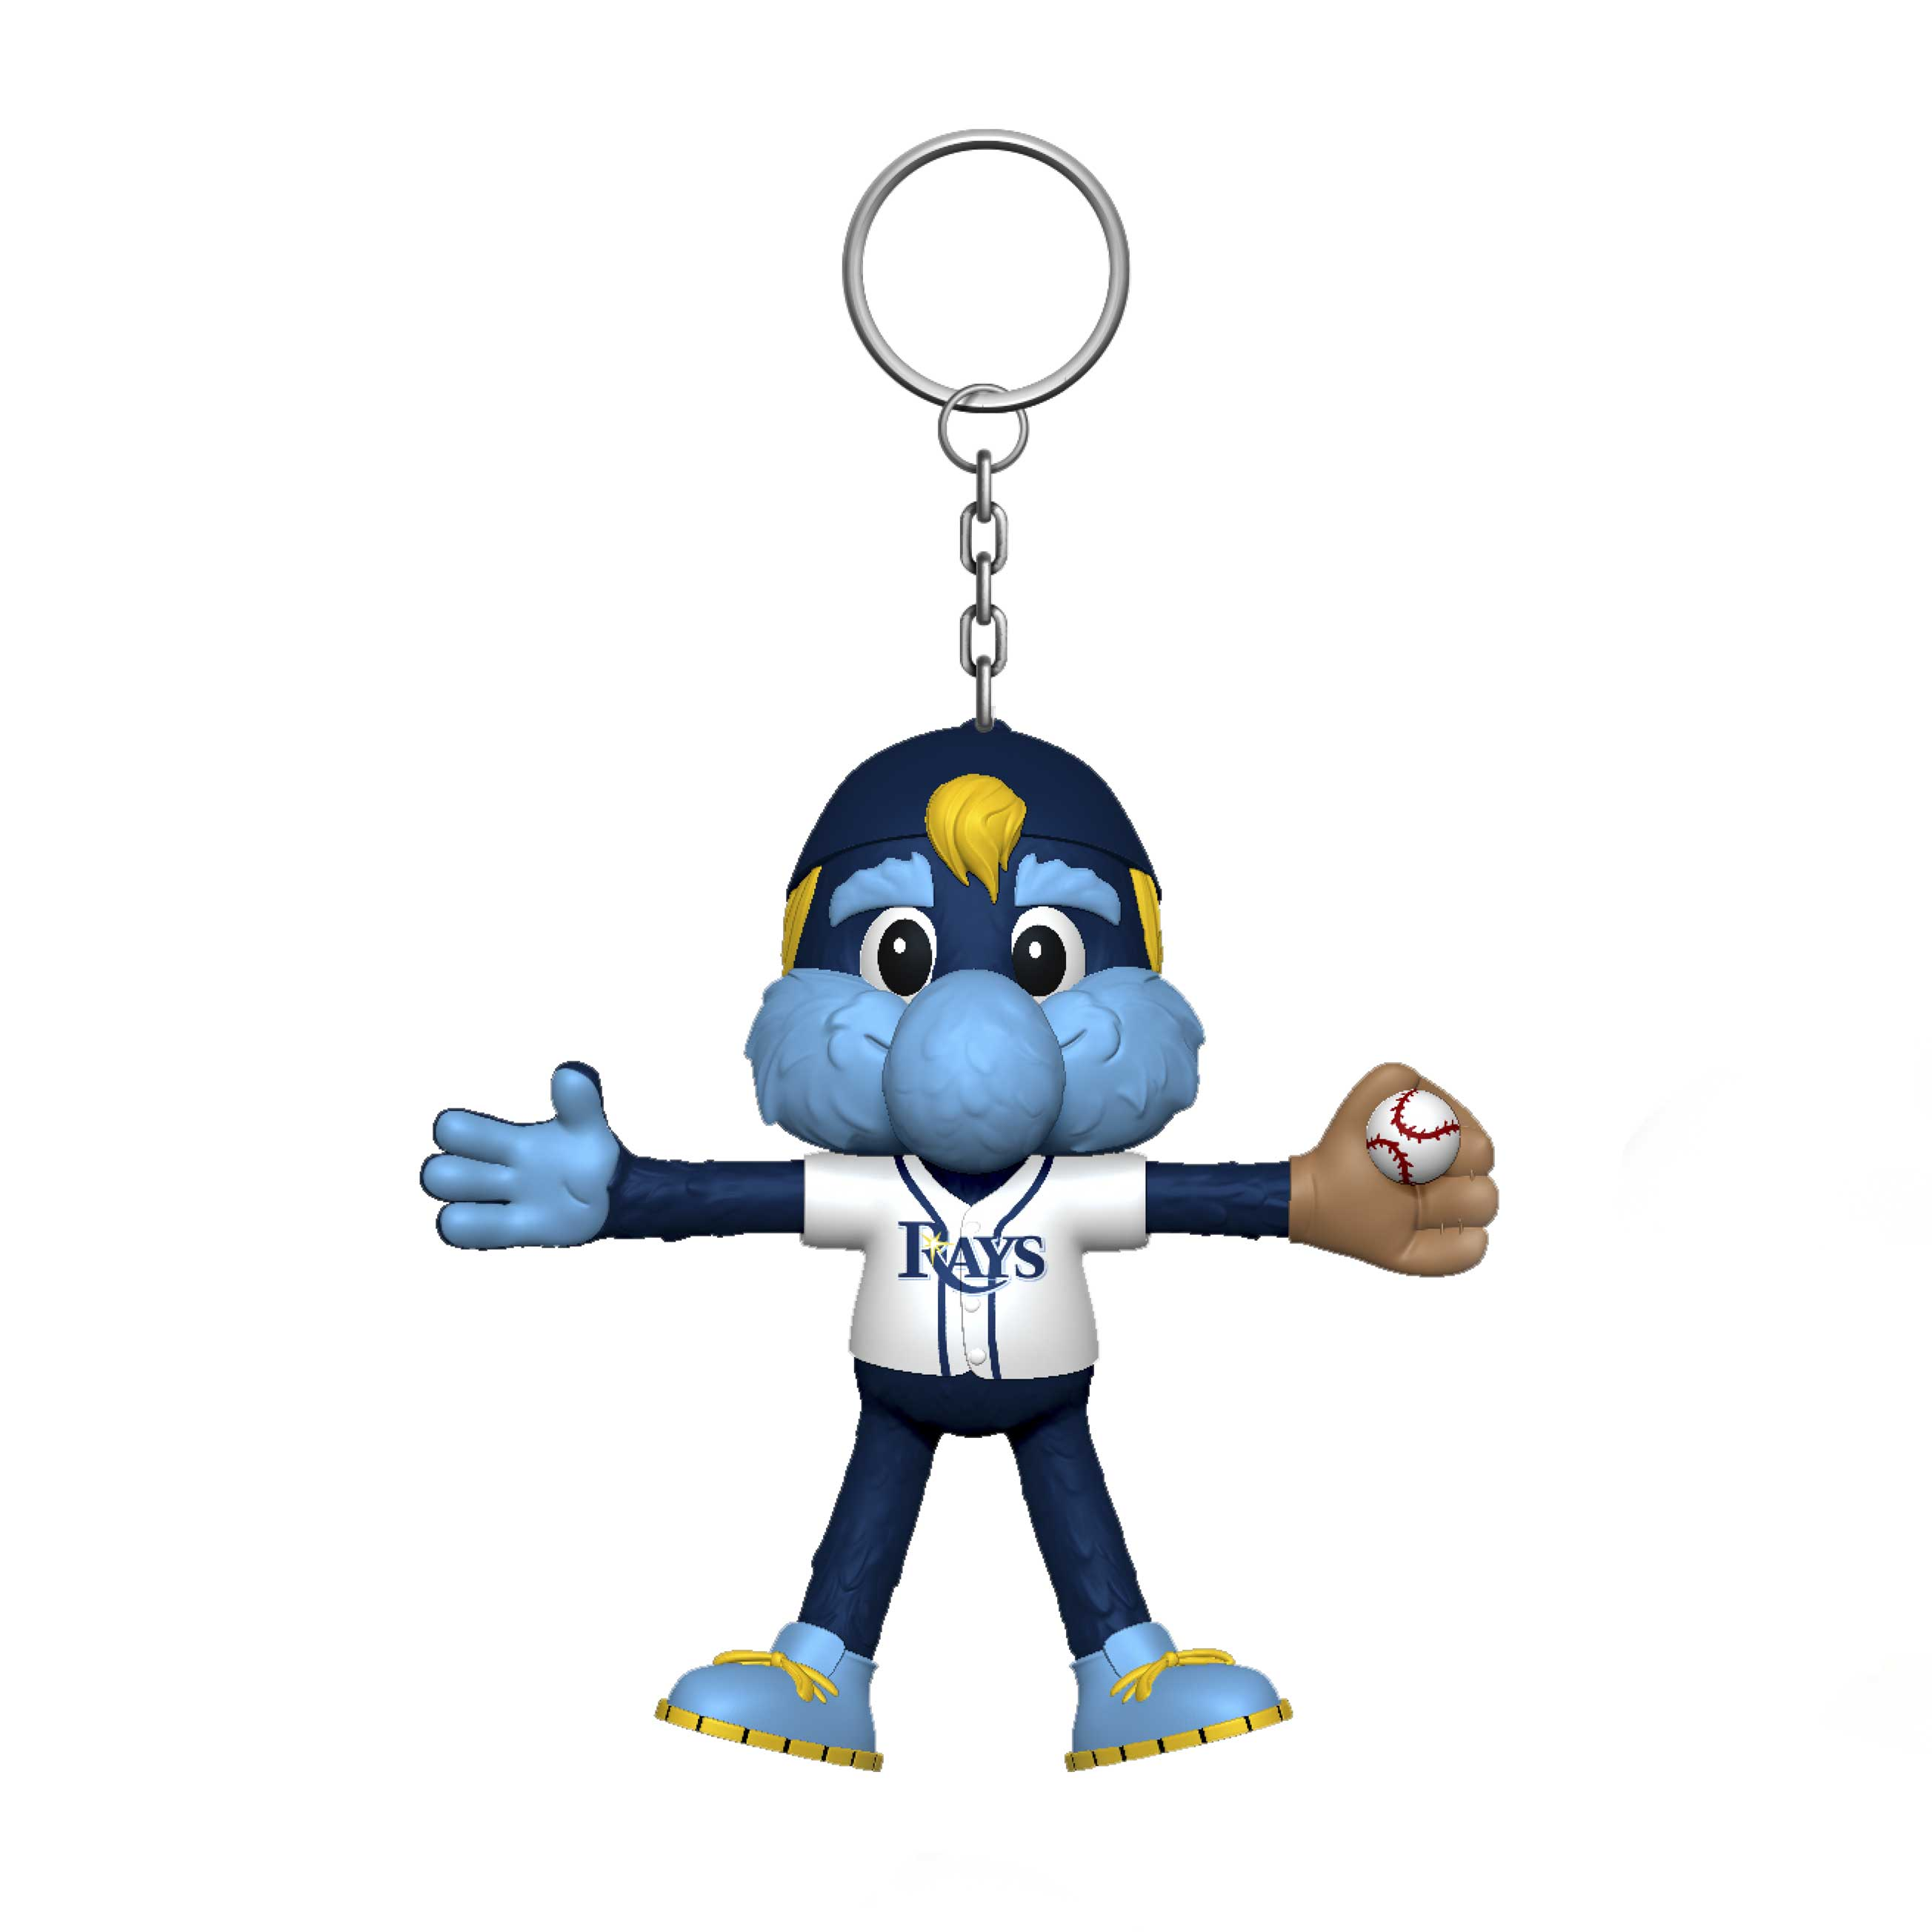 Rays promo item for kids 14 and under